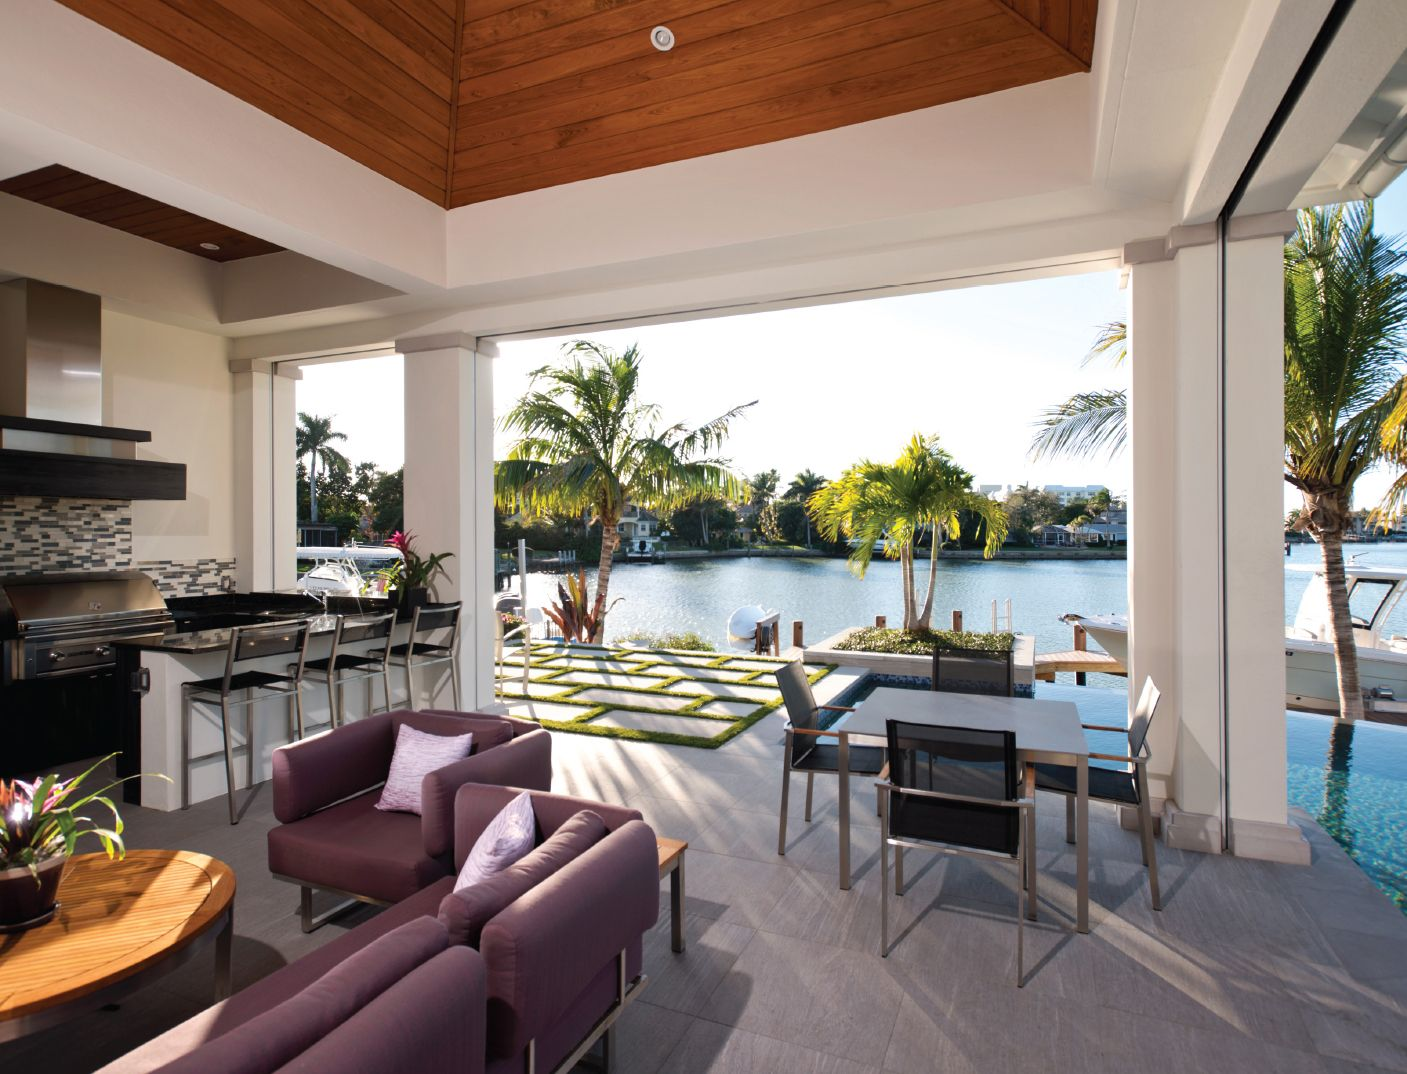 The Home S Exterior Living Space Overlooking The Water Features An Outdoor Kitchen Dining And Living Area Infinity Edge Pool A Home New Homes Living Spaces